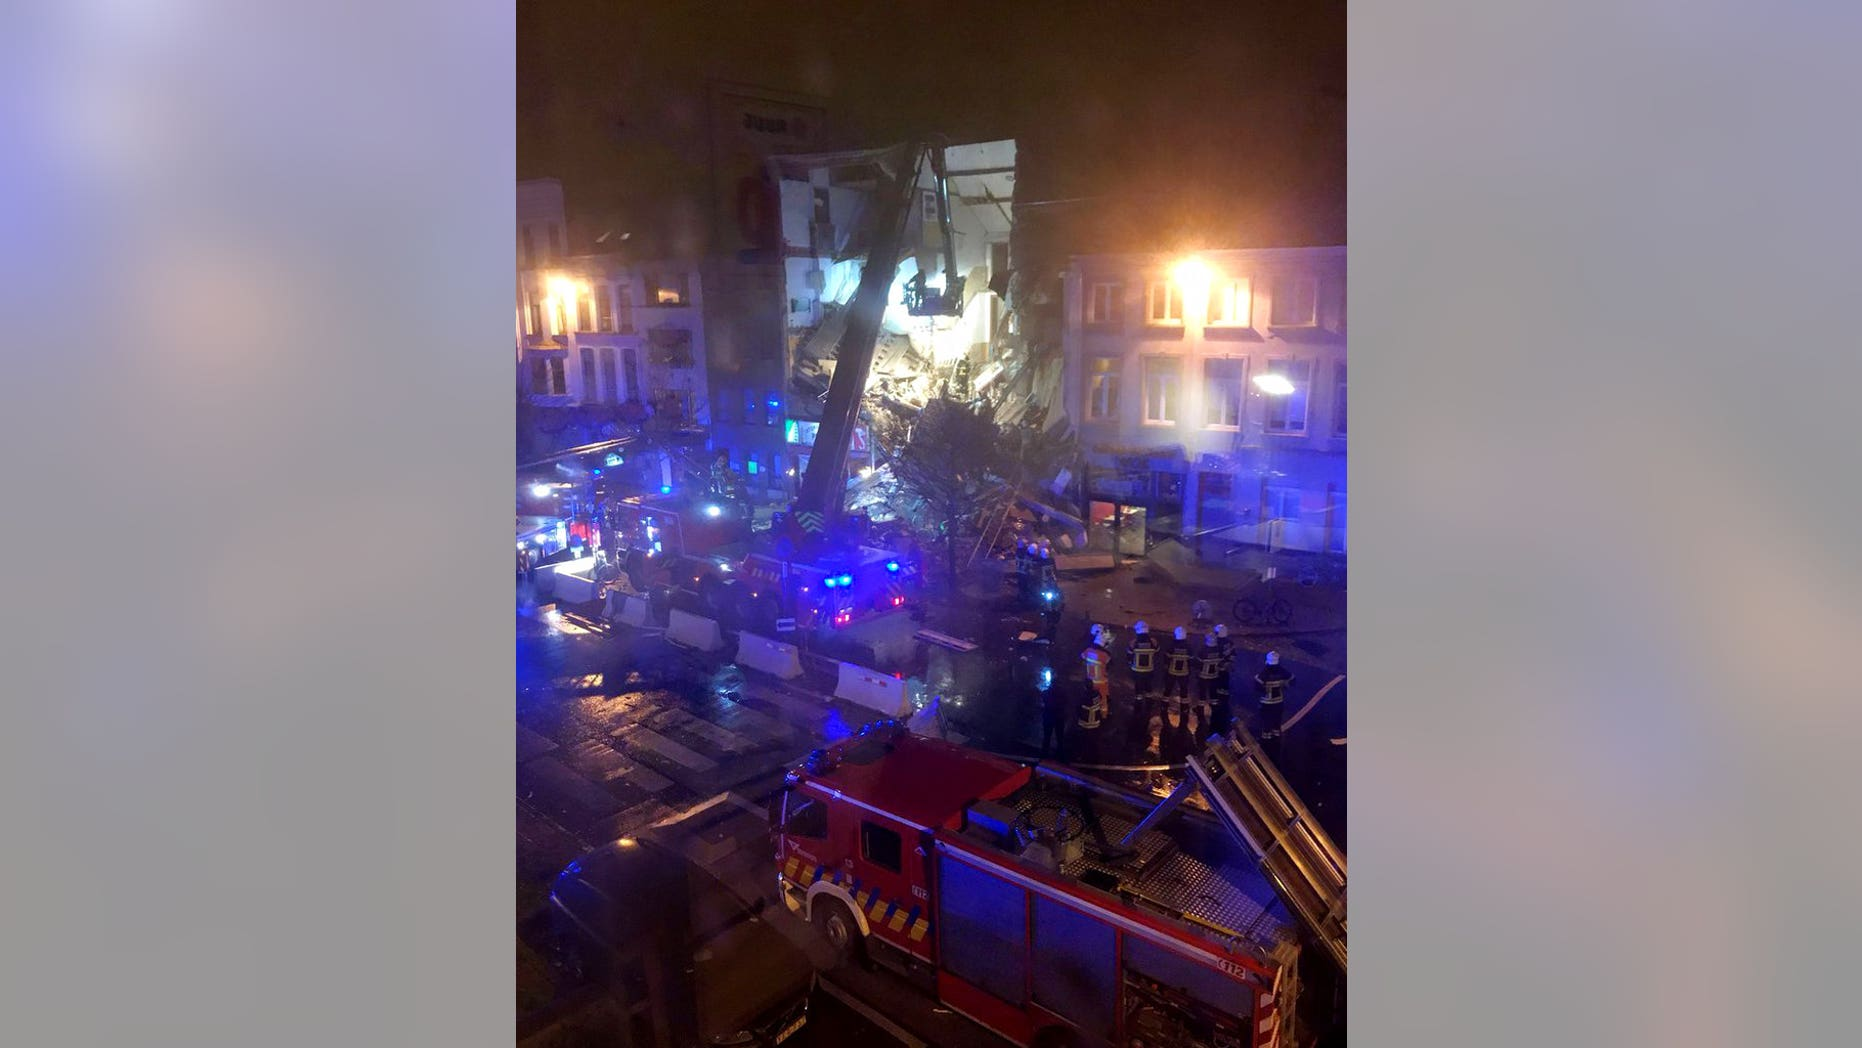 Up to 20 people may have been injured, with some trapped under rubble, after an explosion tore through a residential building Tuesday night in Belgium.